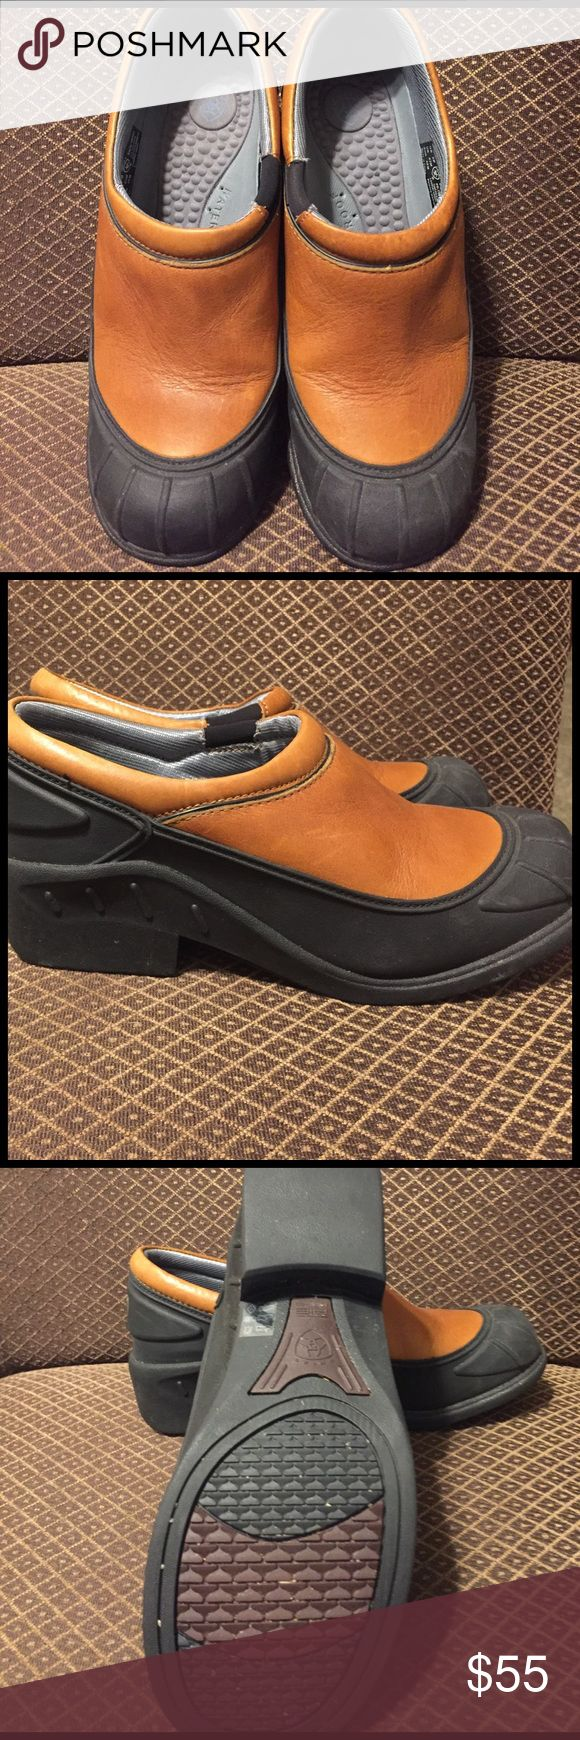 Arian Frog Clog Waterproof Shoe - Size 9 /like new Great waterproof shoes. only worn once.  Hard to Find!! Ariat Shoes Mules & Clogs